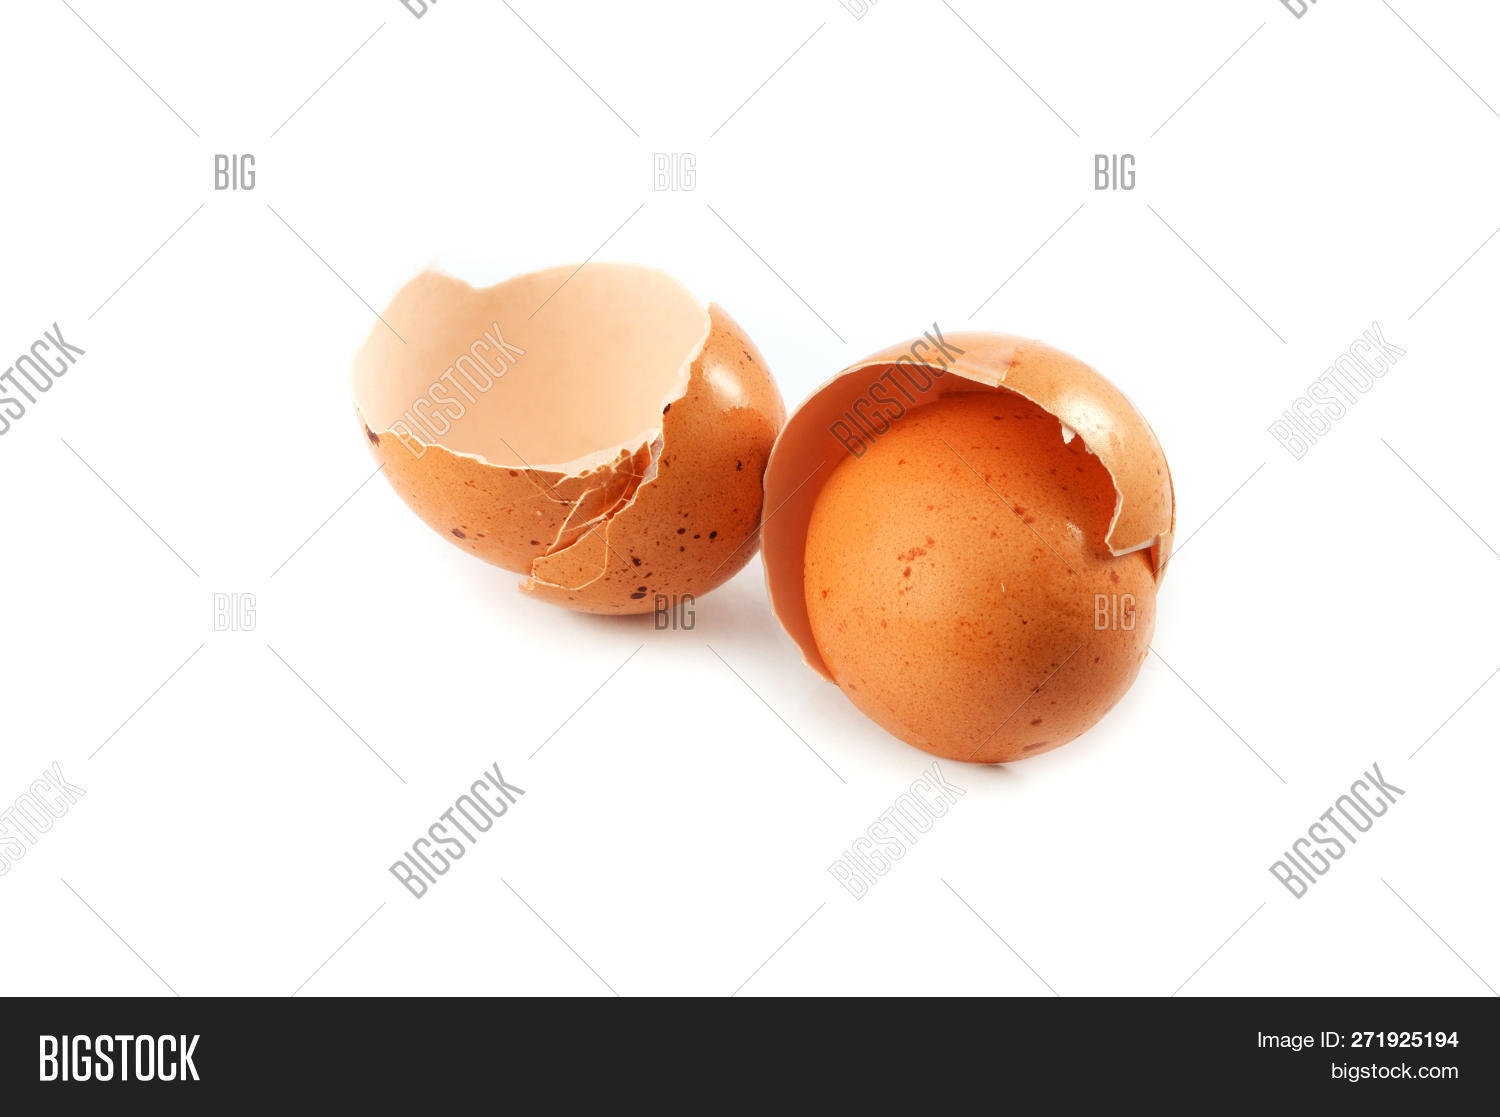 Egg Shell Isolated Image Photo Free Trial Bigstock